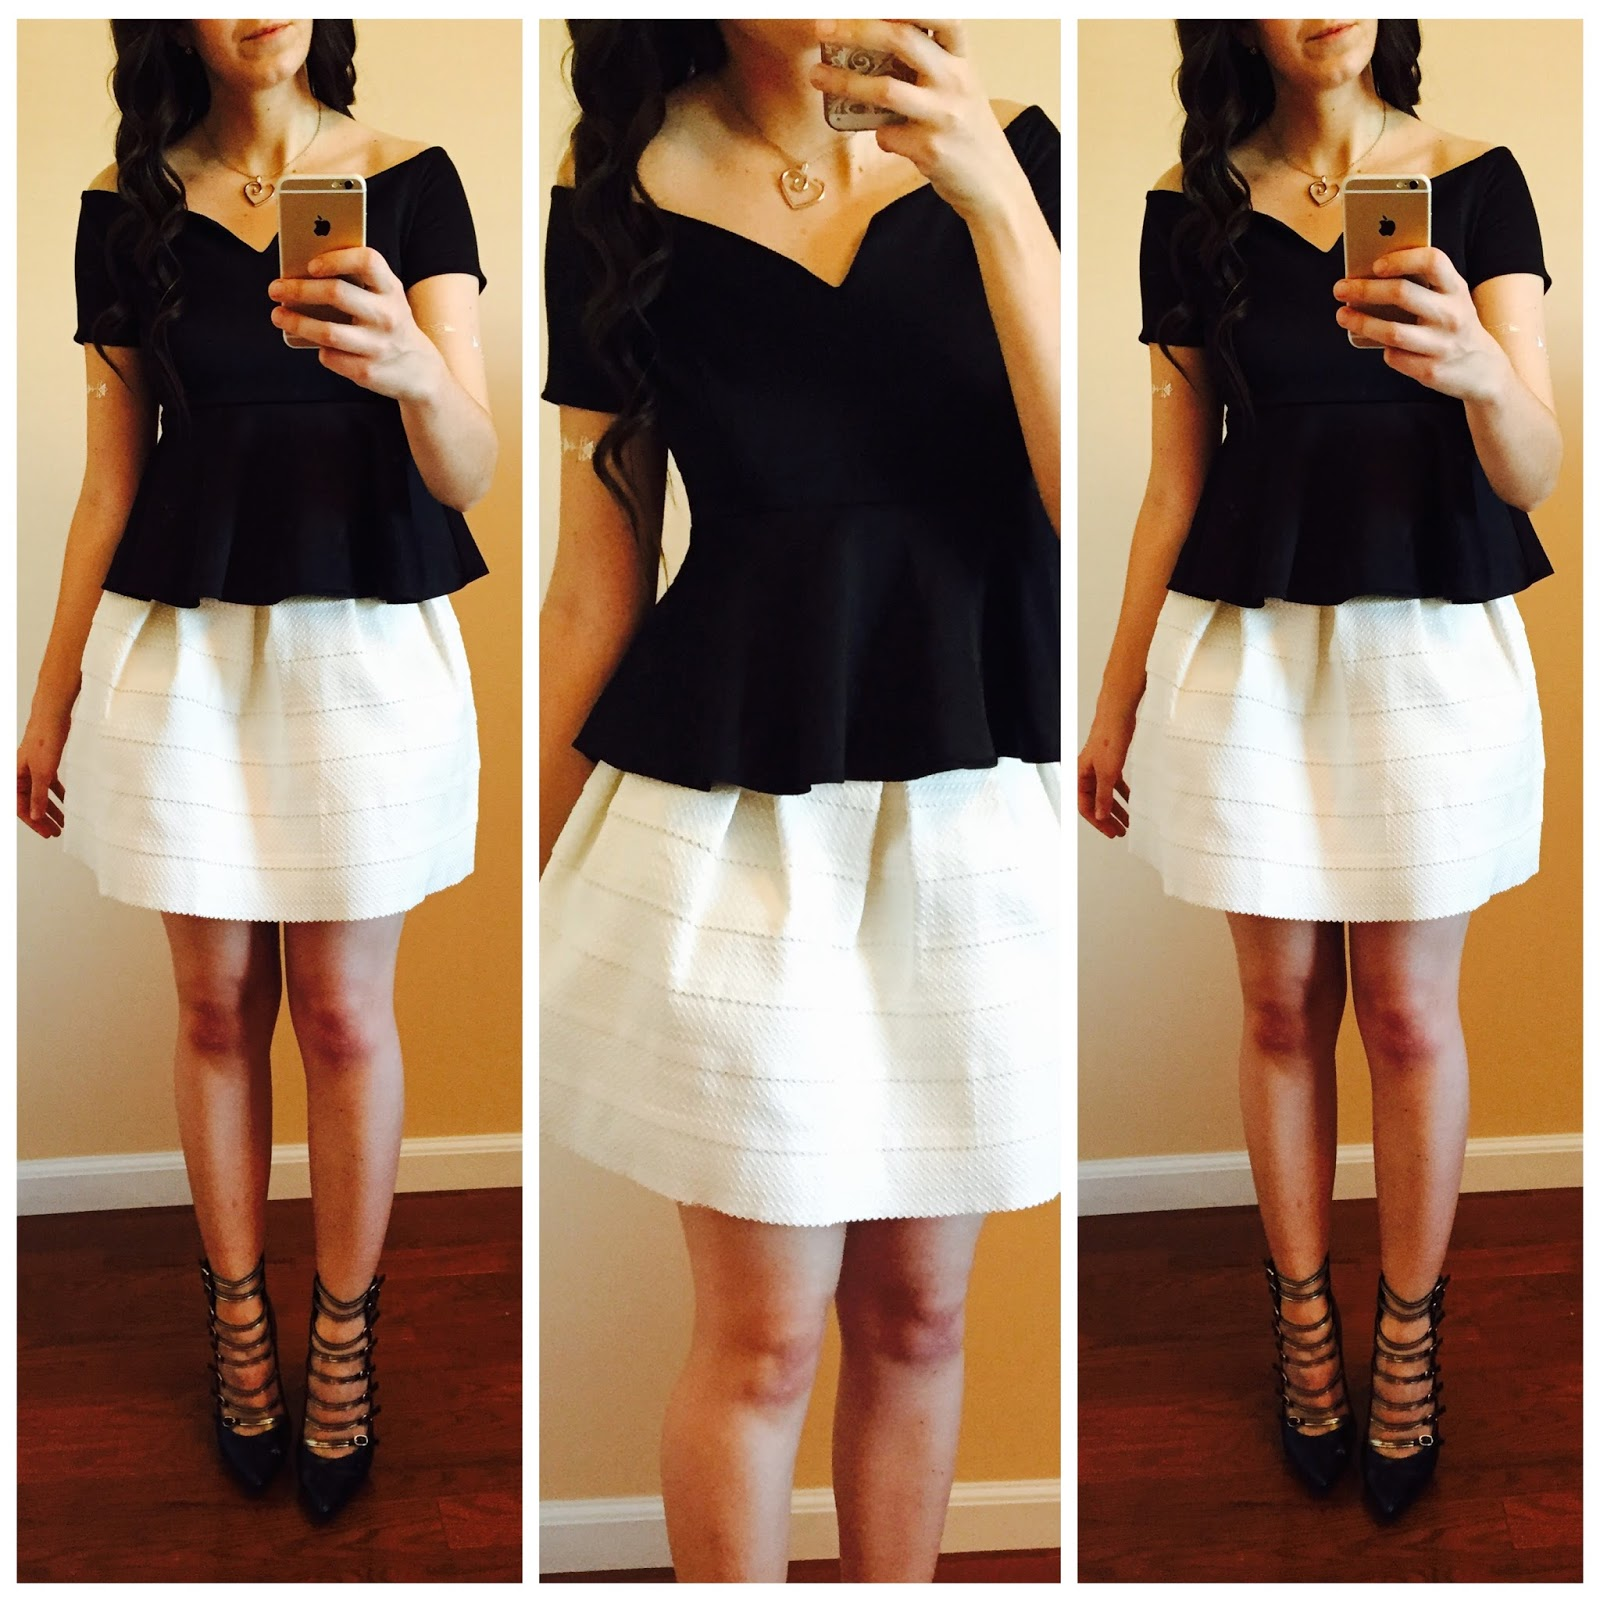 stylemoi, stylemoi daily outfits, styling different outfits, teen fashion, peplum top, polka dot dress, what to wear with pretty peplum tops, white and black peplum top, pretty outfits,